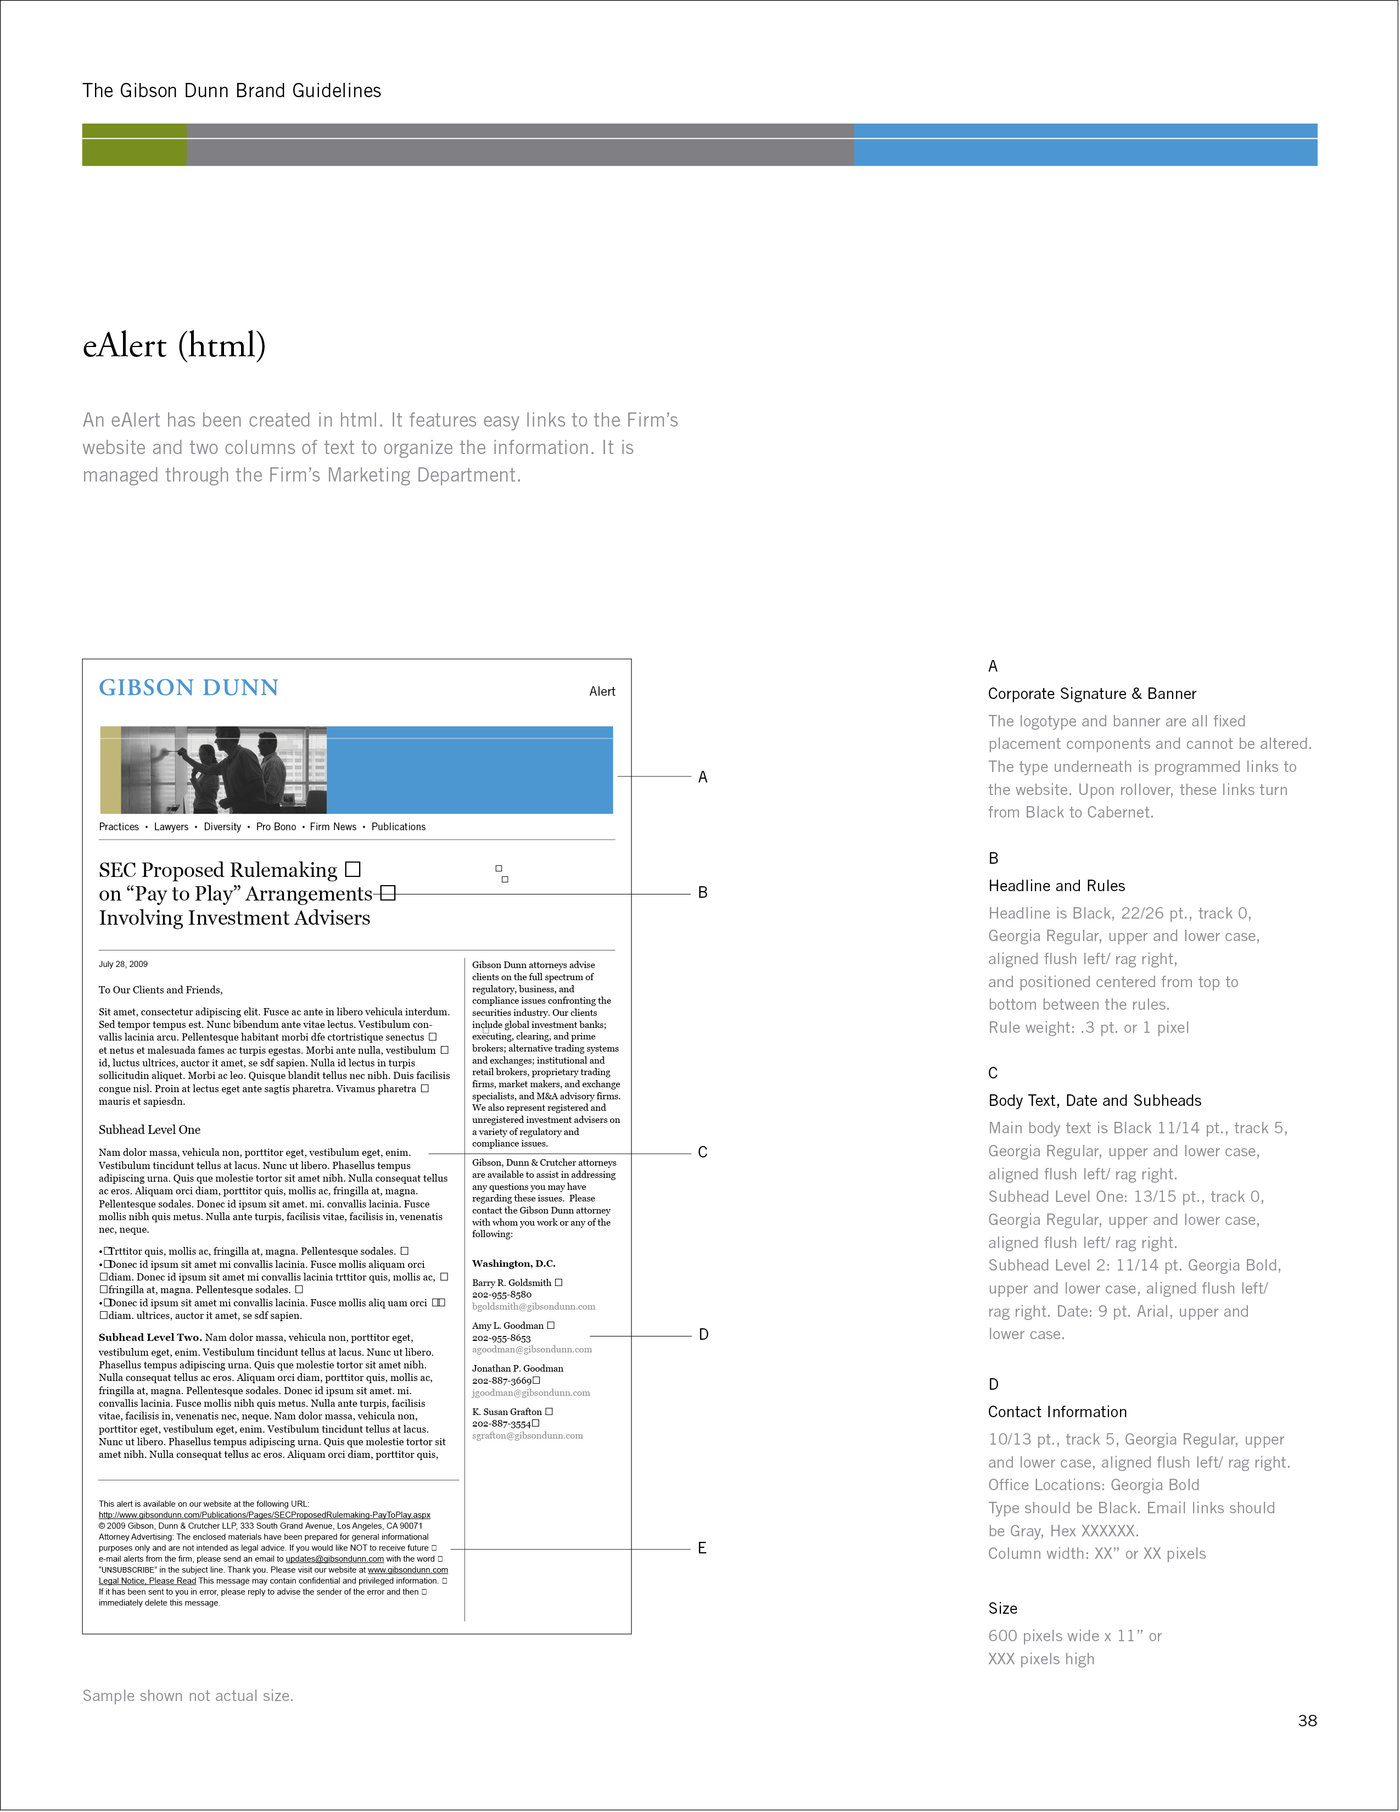 Brand Guidelines by Sharrie Brooks at Coroflot com